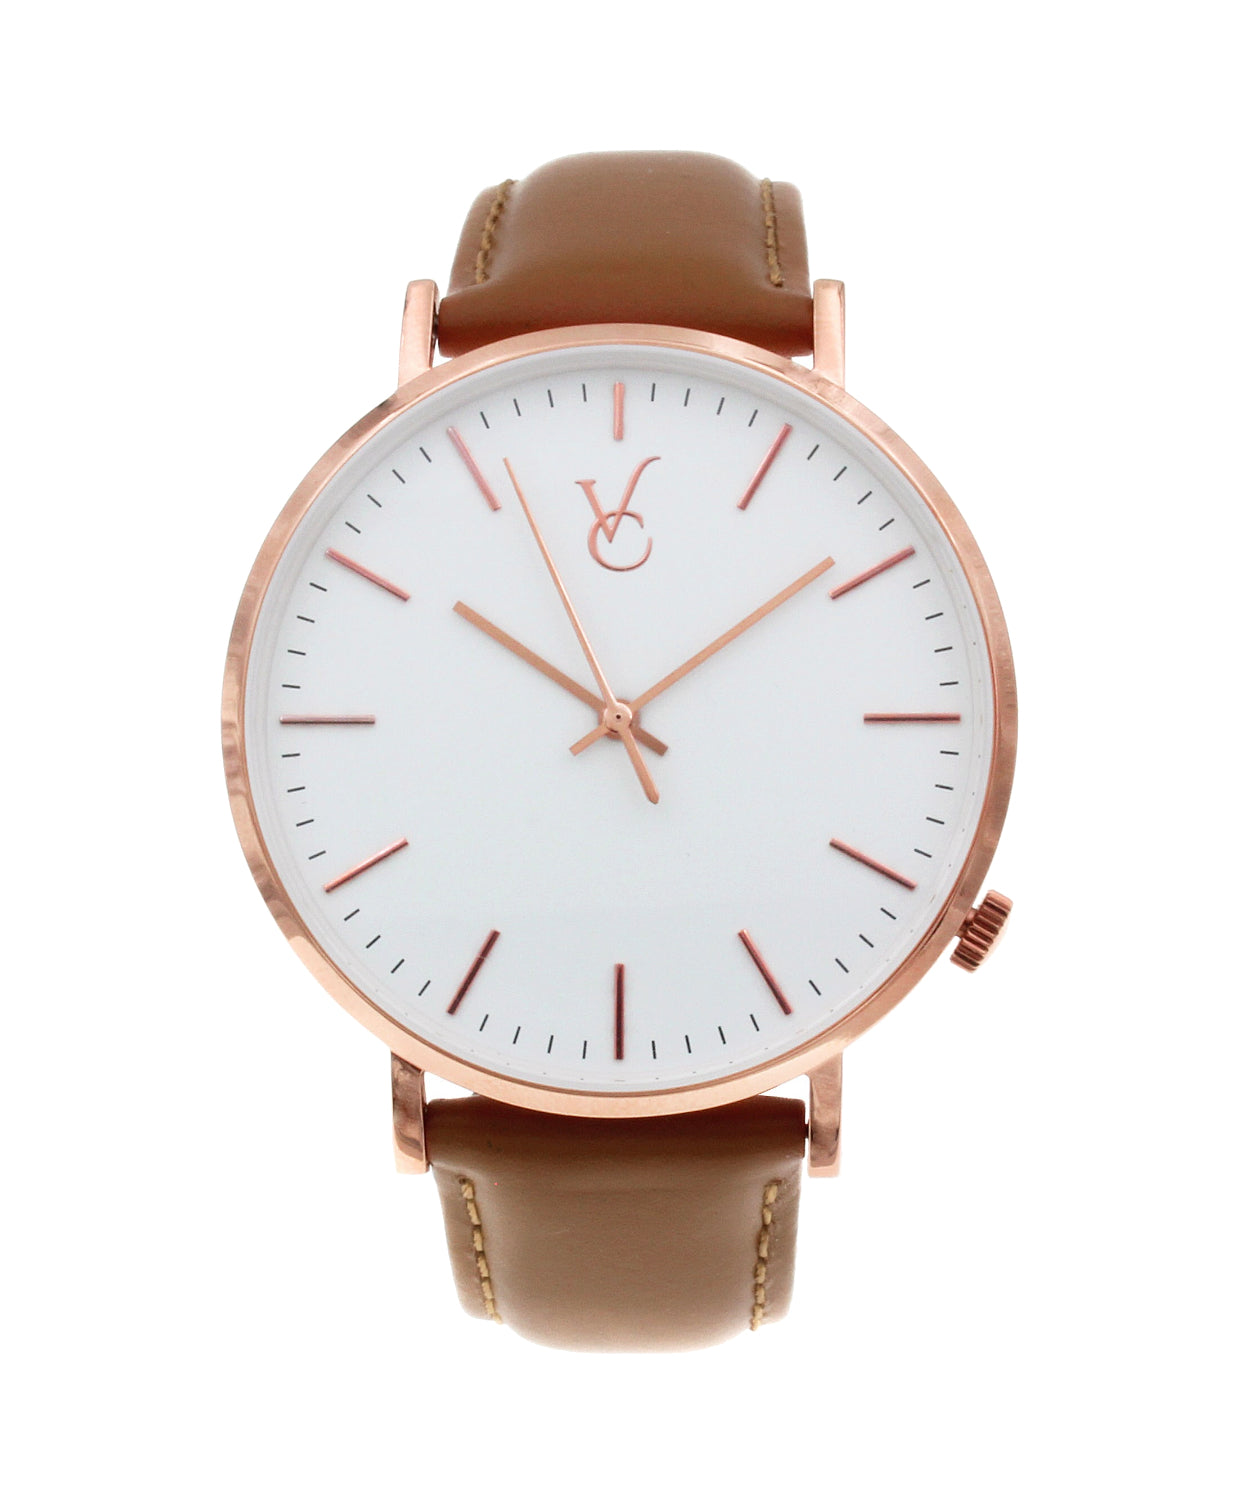 Brown Leather & Rose Gold Trim Watch